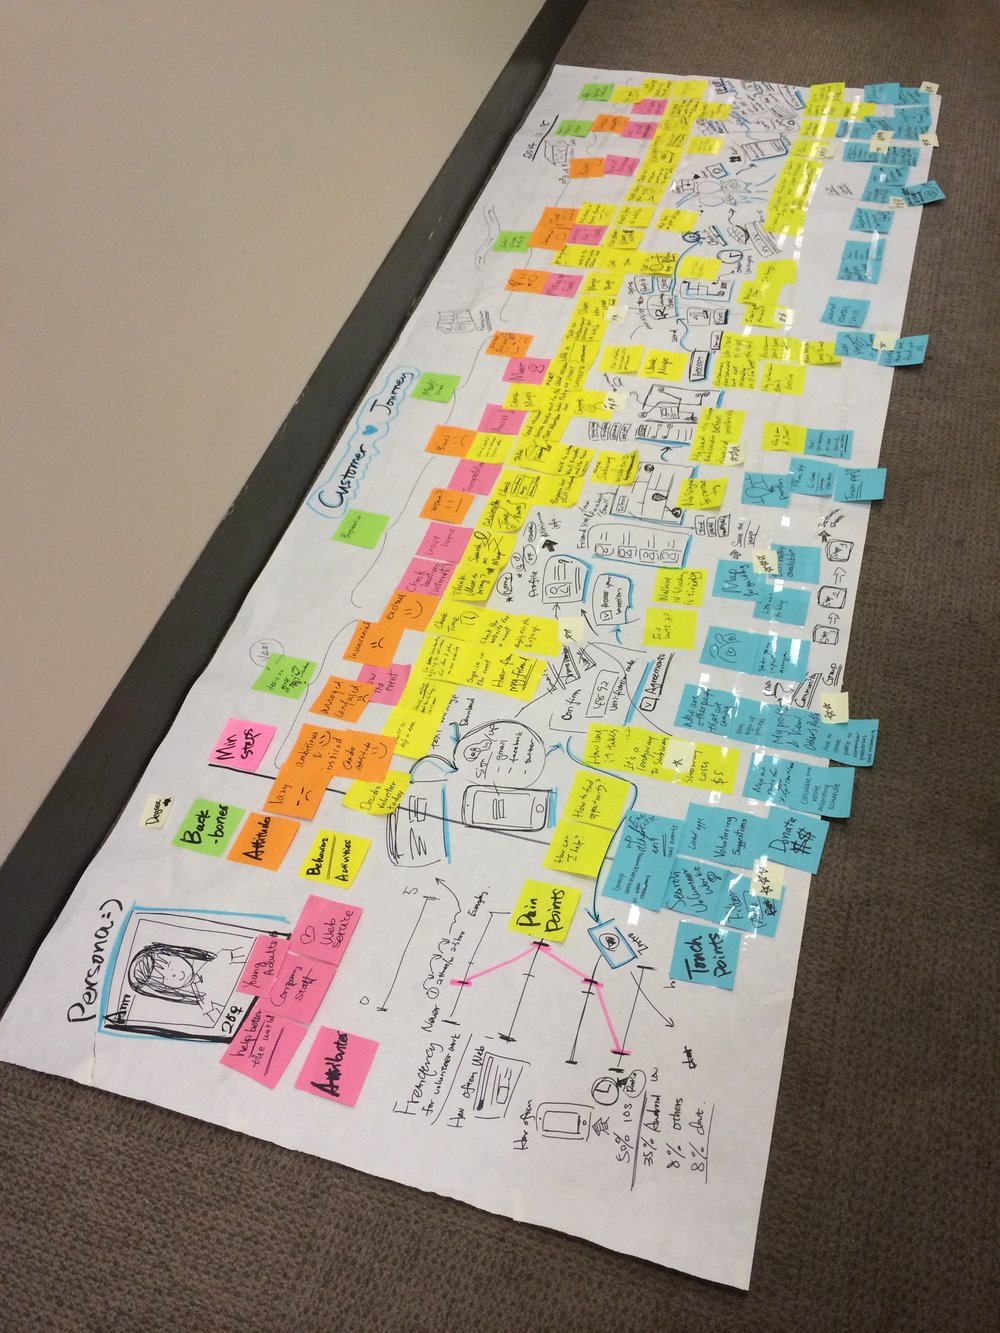 User Journey Map co-created with our client Rescuing Leftover Cuisine